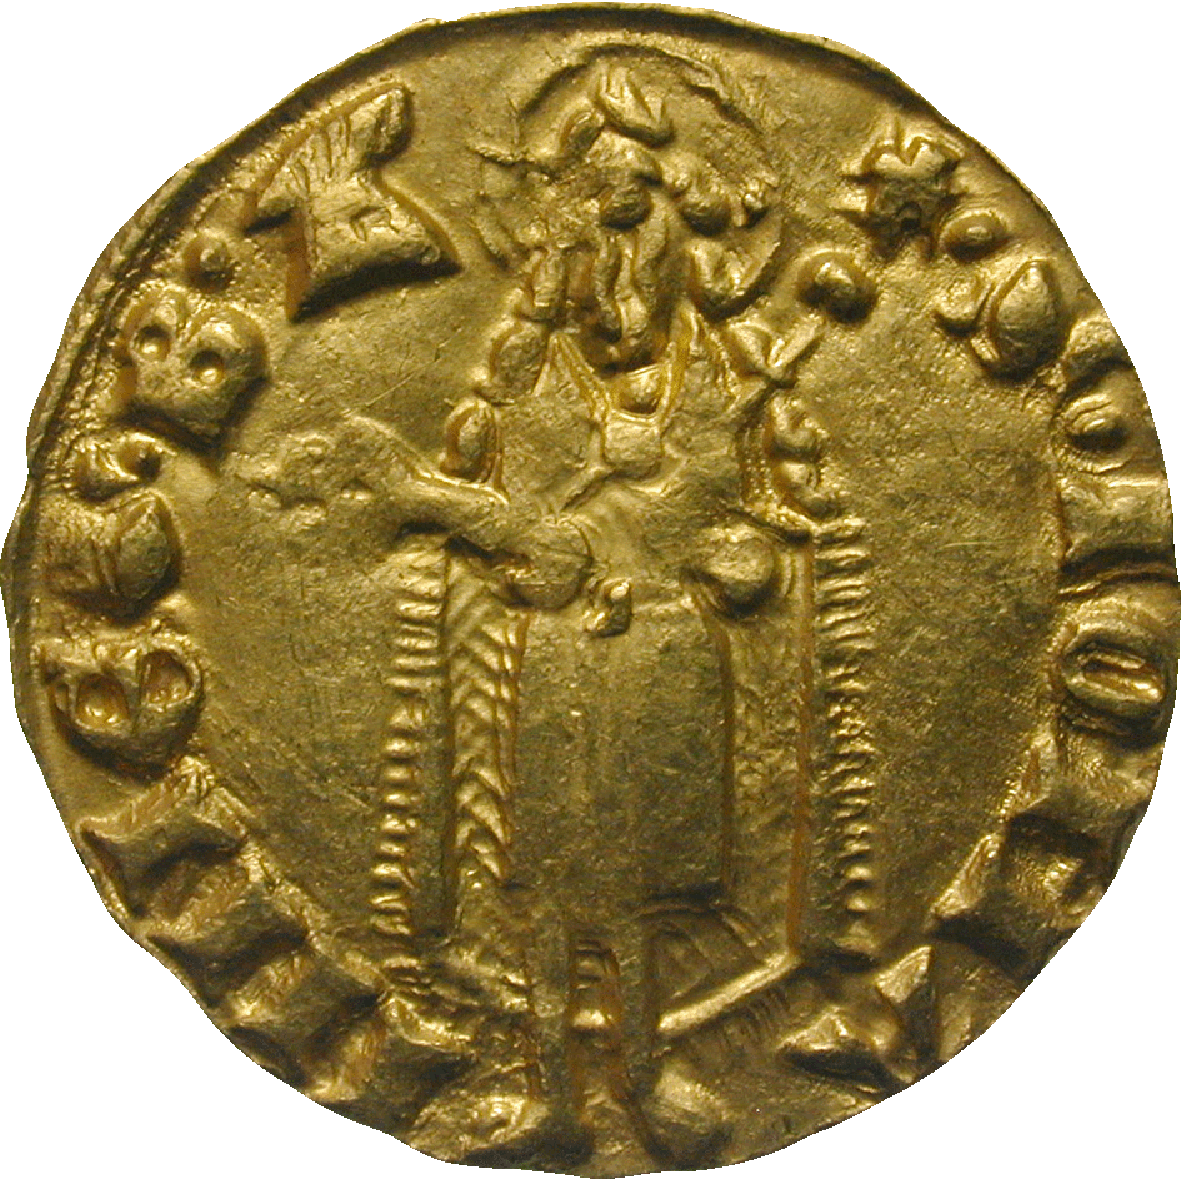 Kingdom of Bohemia, John of Luxemburg, Goldgulden (reverse)